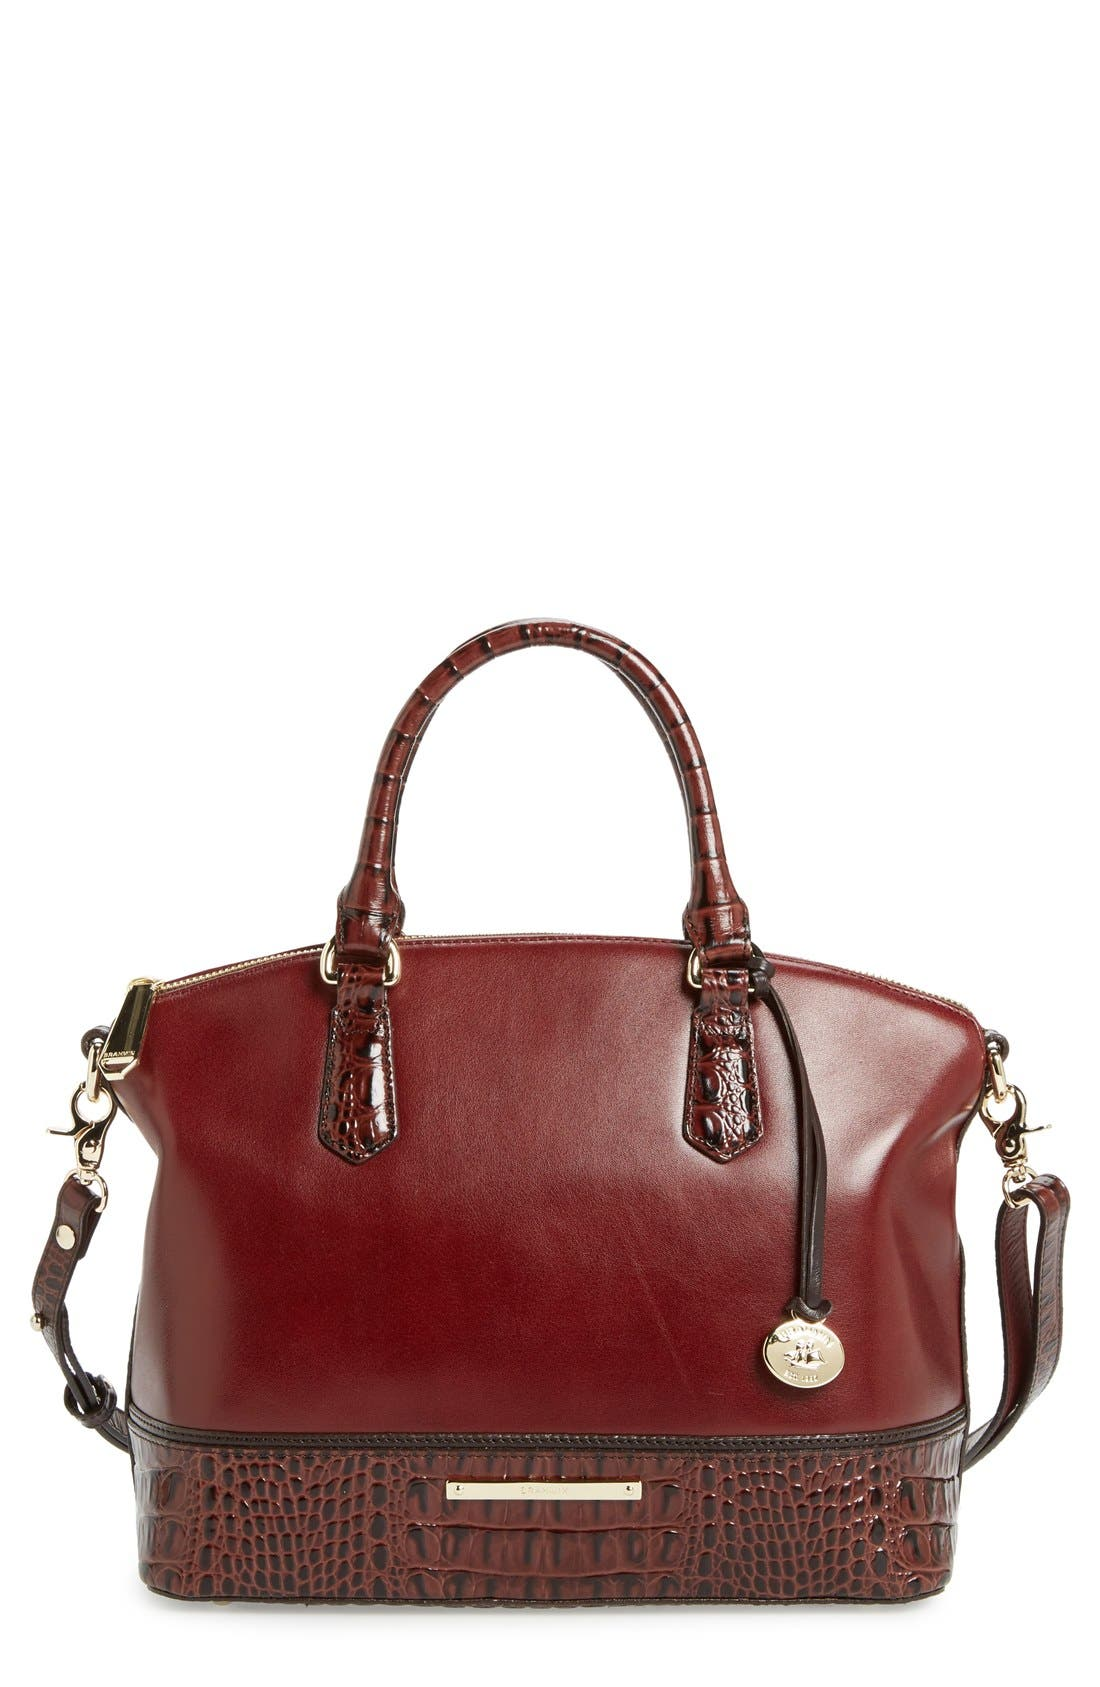 Alternate Image 1 Selected - Brahmin 'Duxbury' Leather Satchel